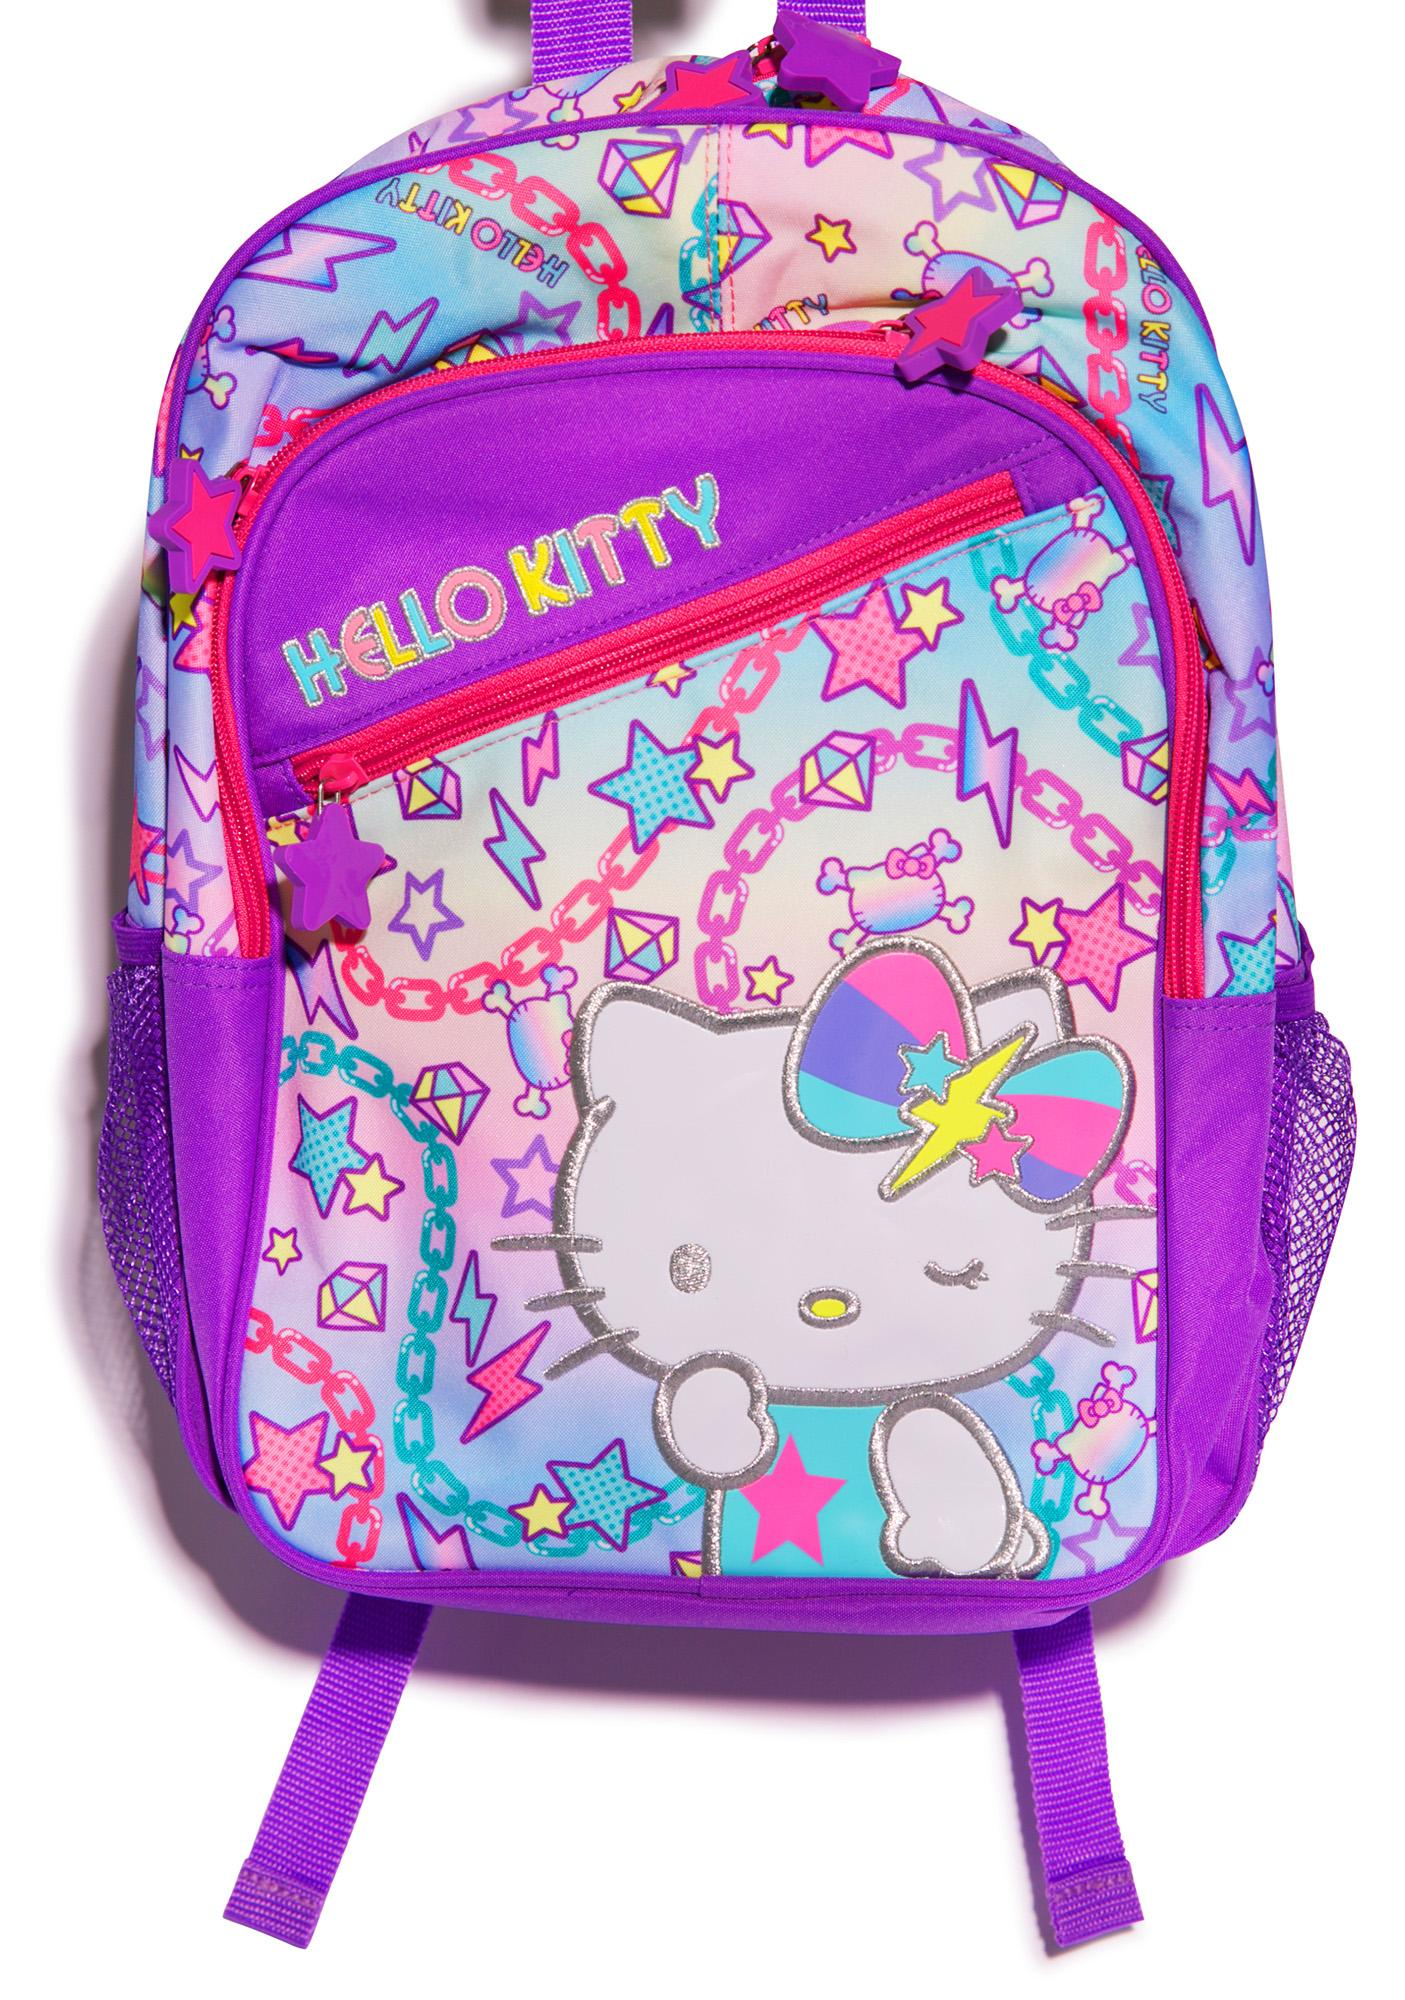 Sanrio Hello Kitty Gradation Backpack